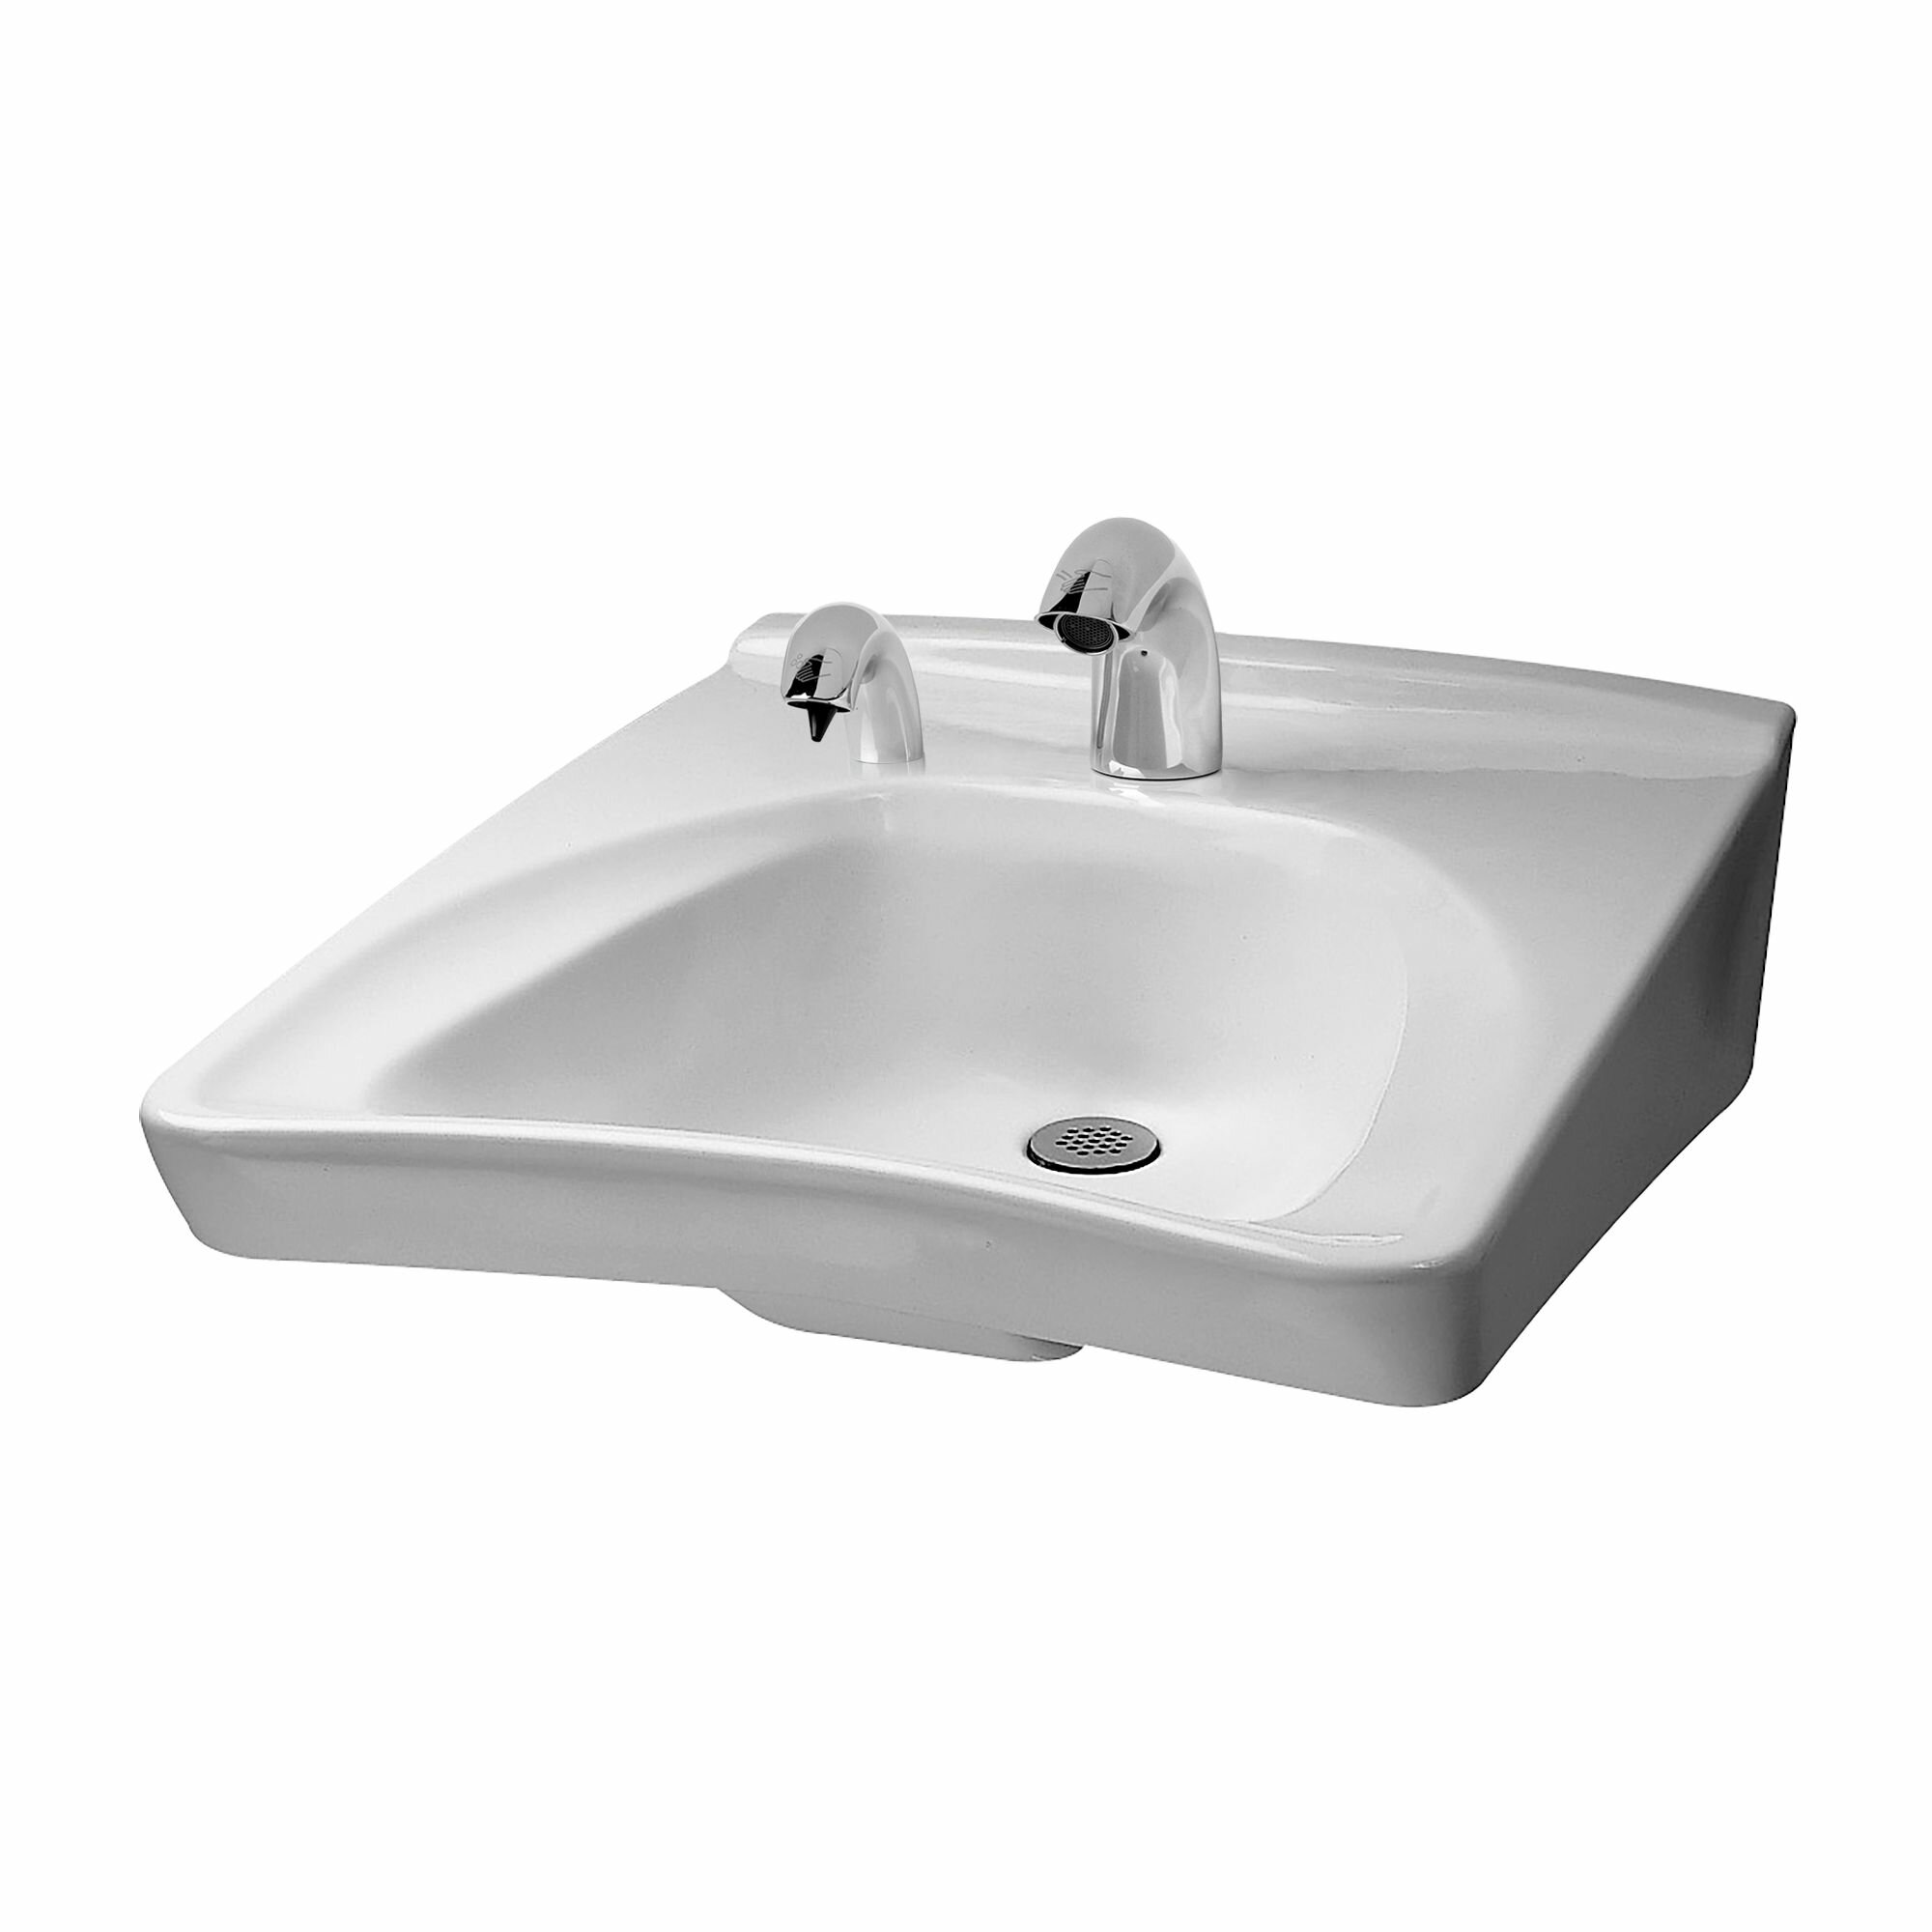 Toto Commercial Vitreous China 27 Wall Mount Bathroom Sink With Overflow Wayfair